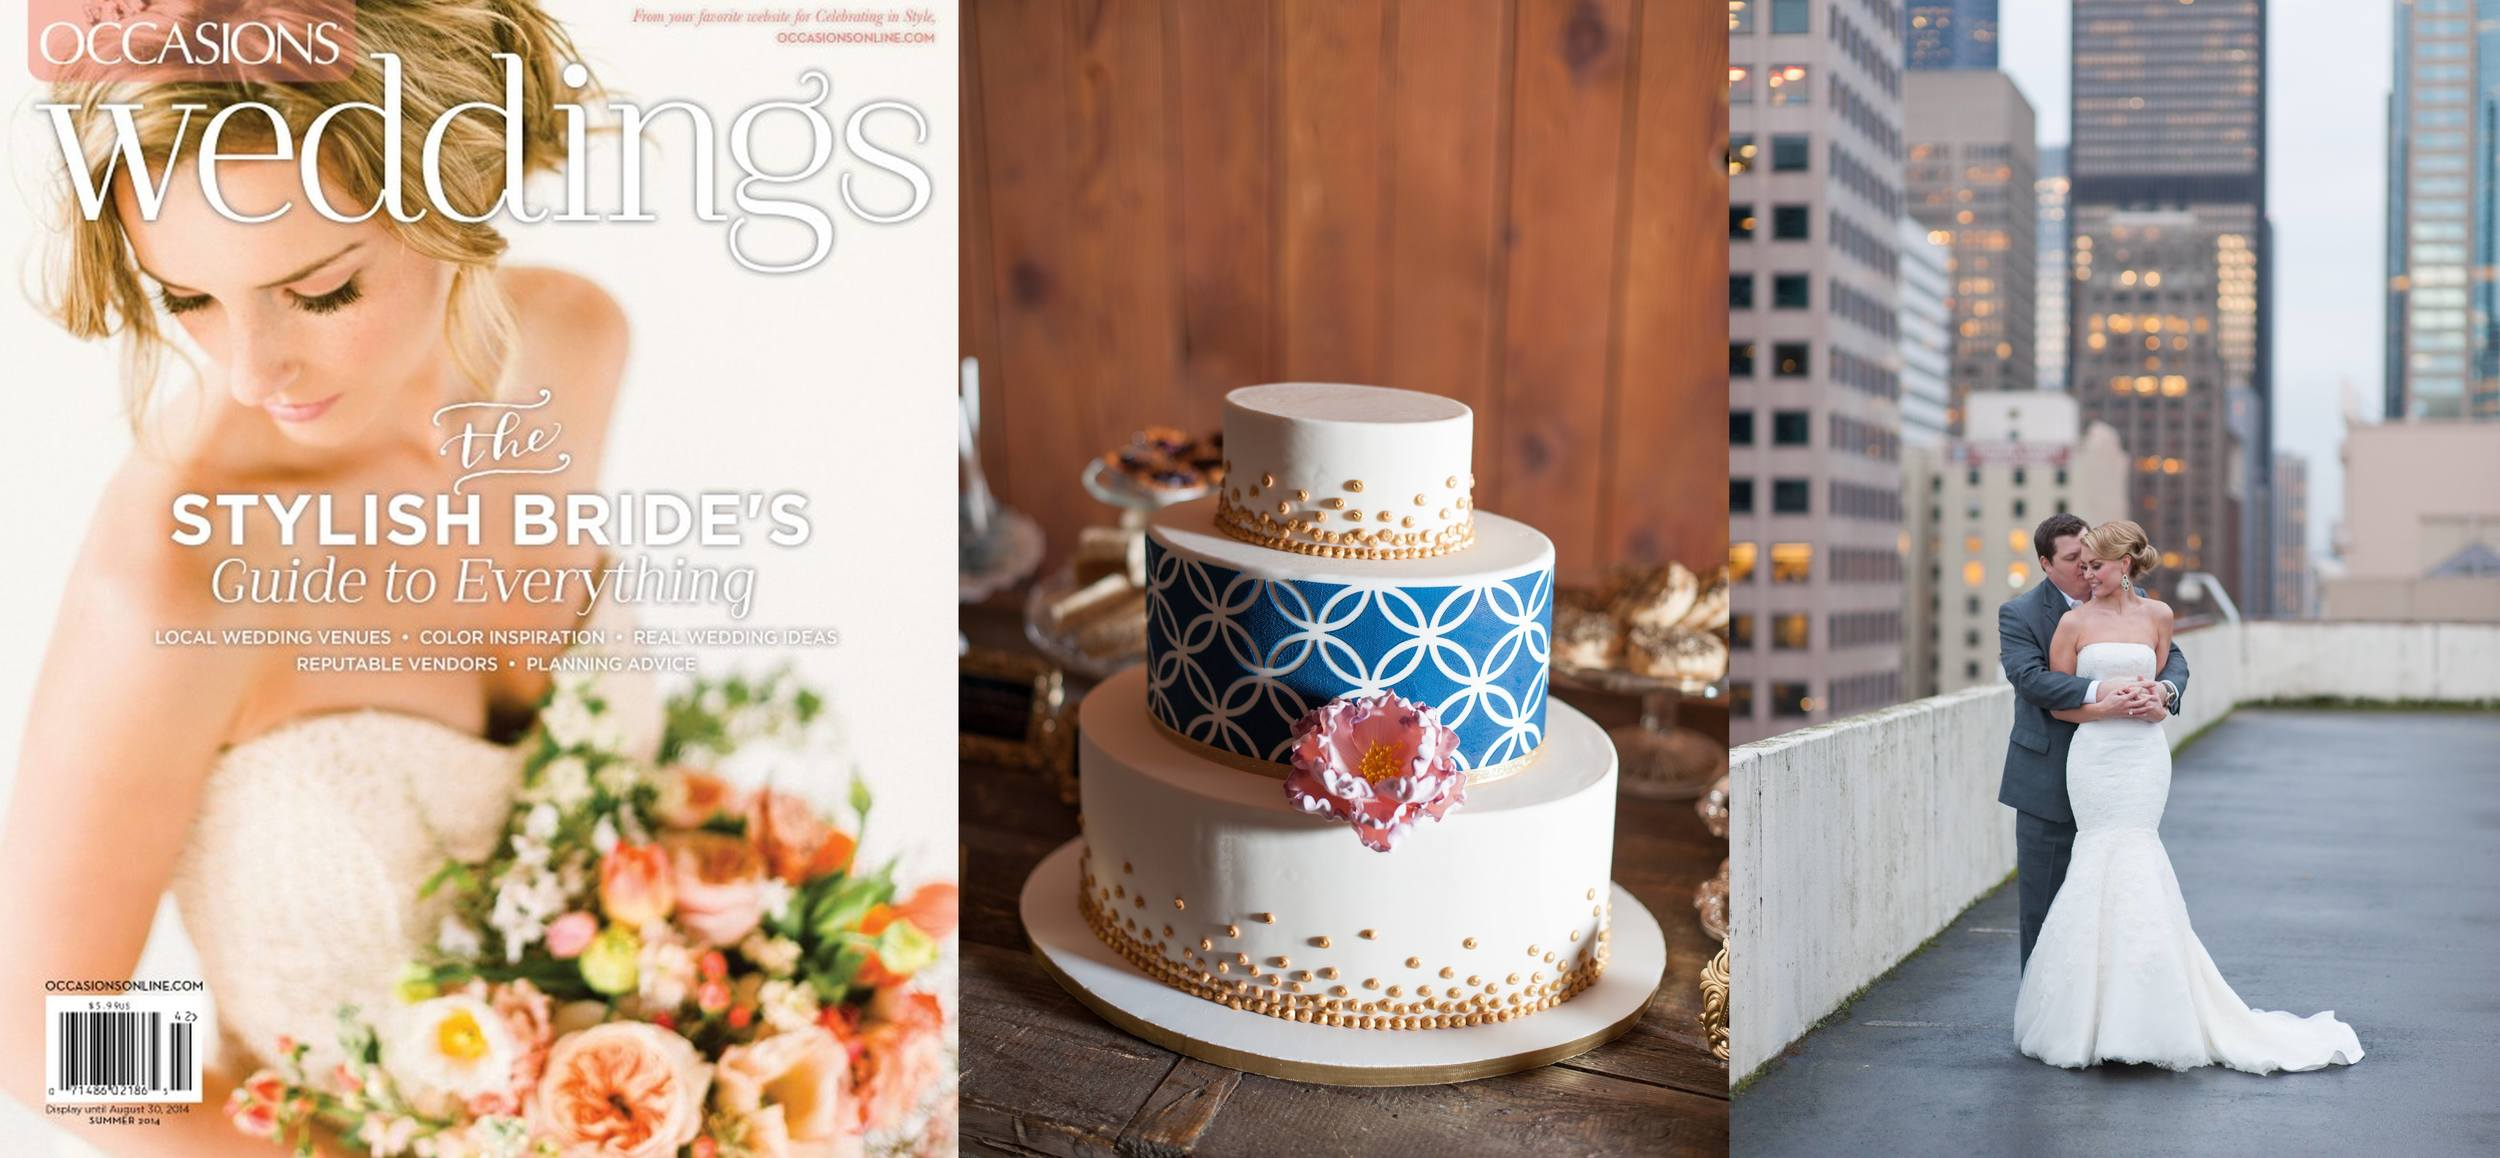 Occasions: Weddings, Summer 2014